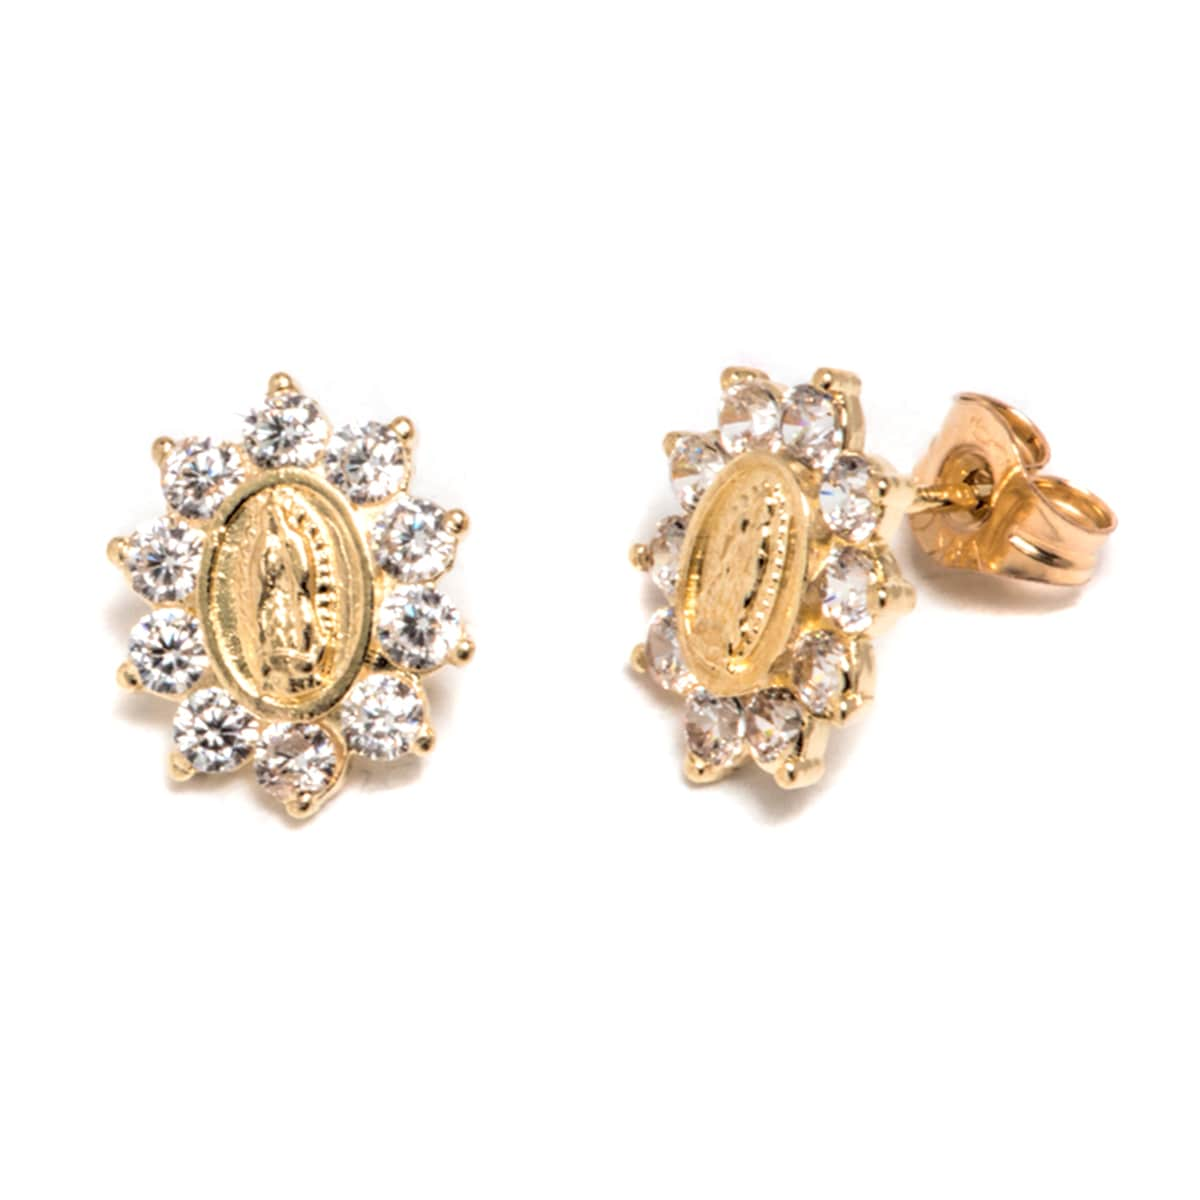 f07338fcb Shop Pori 14k Solid Gold and Swarovski Crystals Guadalupe Spike Stud  Earrings - Free Shipping Today - Overstock - 14051795